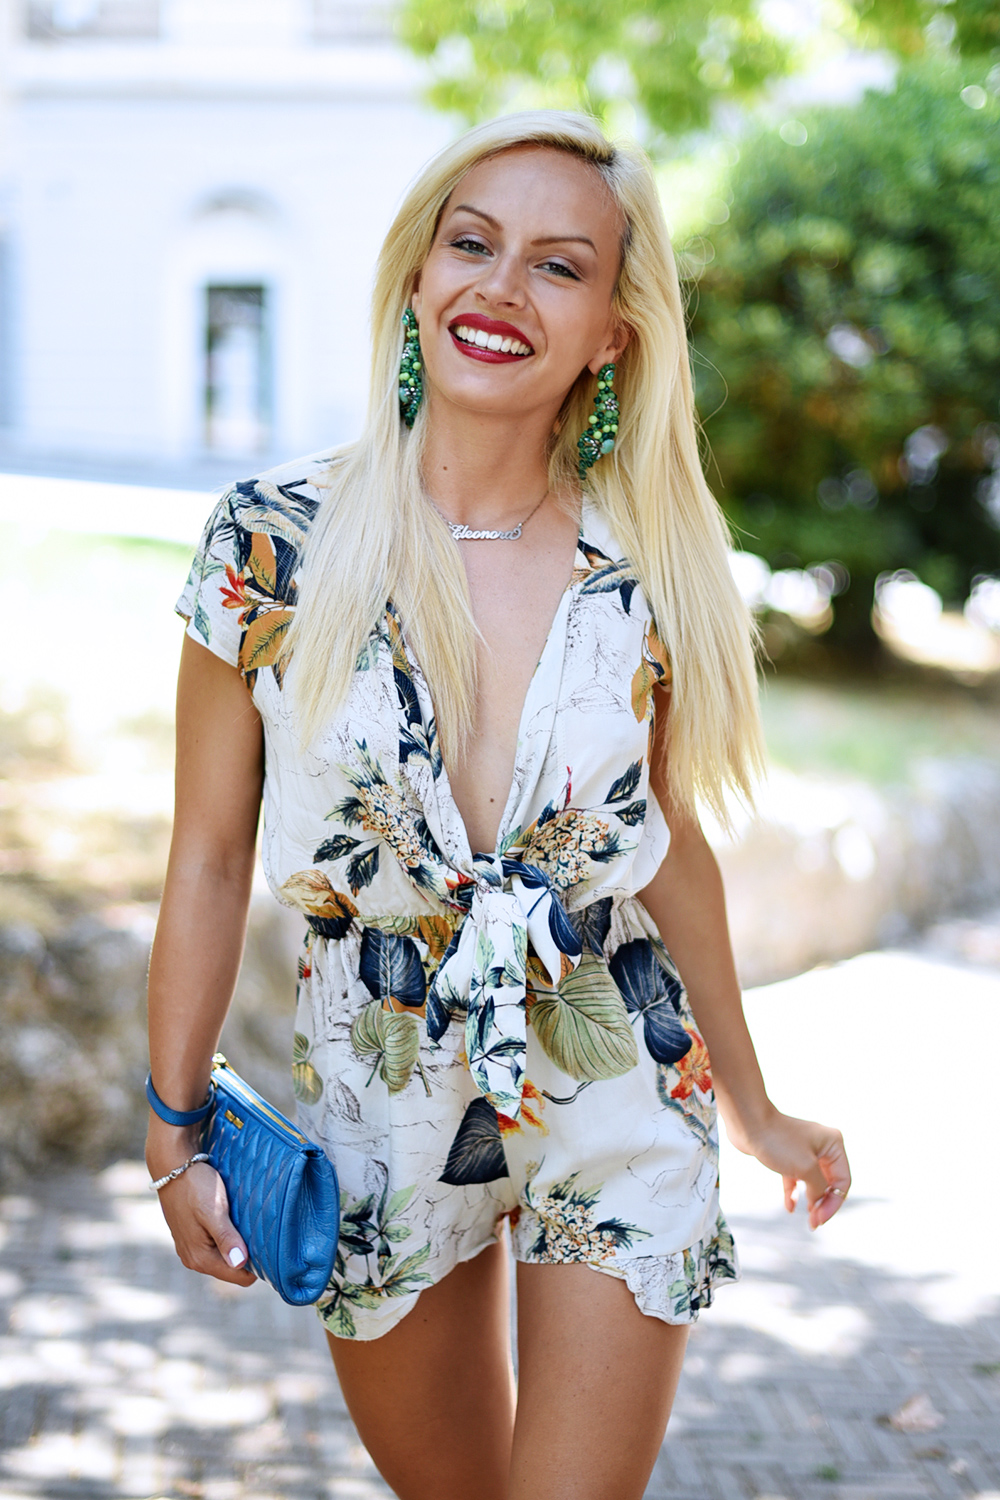 Lookbook Store, playsuit, tendencia mono, flower jumpsuit playsuit, tute estive, Miu Miu clutch, outfit summer 2015 - fashion blogger It-Girl by Eleonora Petrella